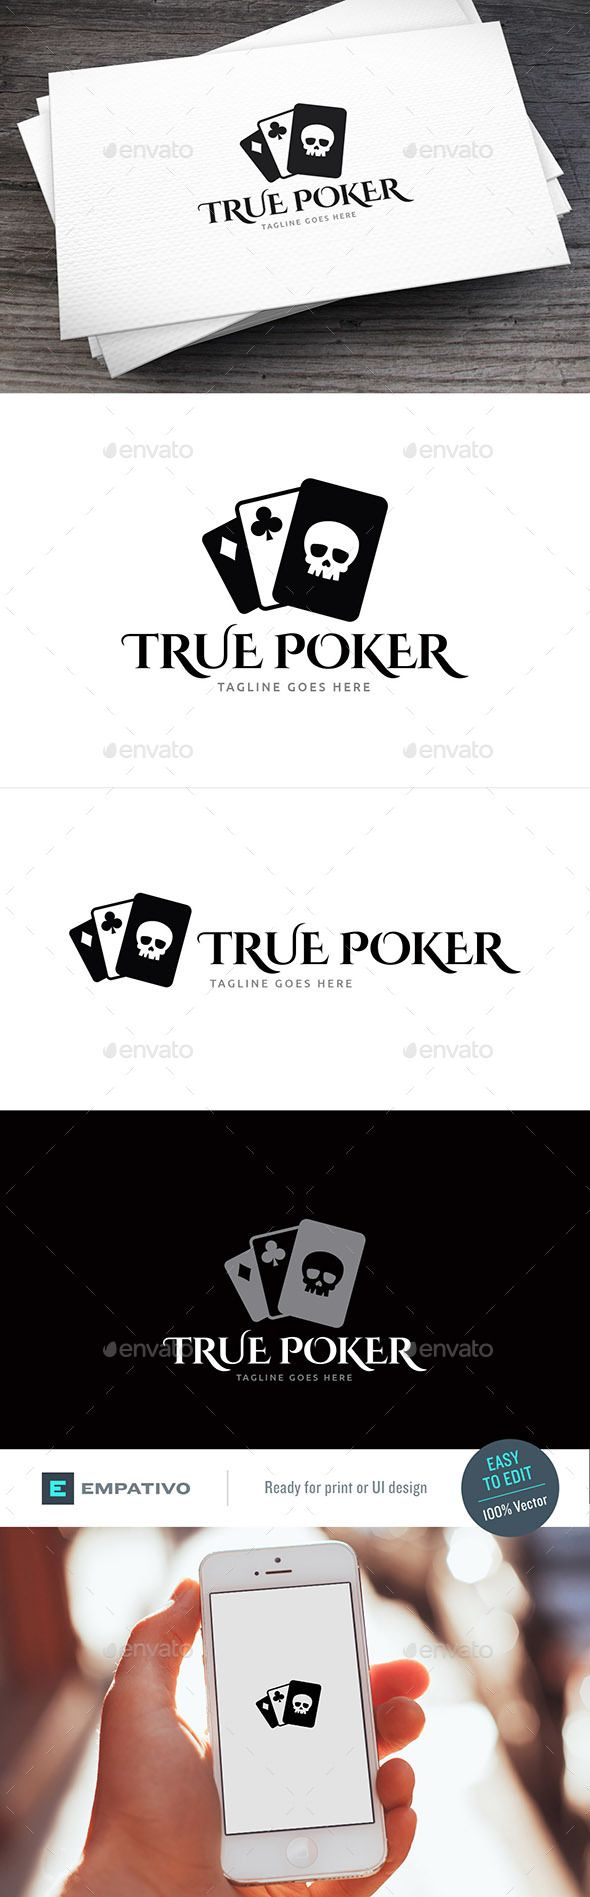 True Poker Logo Template by empativo Modern, versatile and stylish logo template. Ideal for a wide range of uses. Features  100% vector. Easy to edit color / text